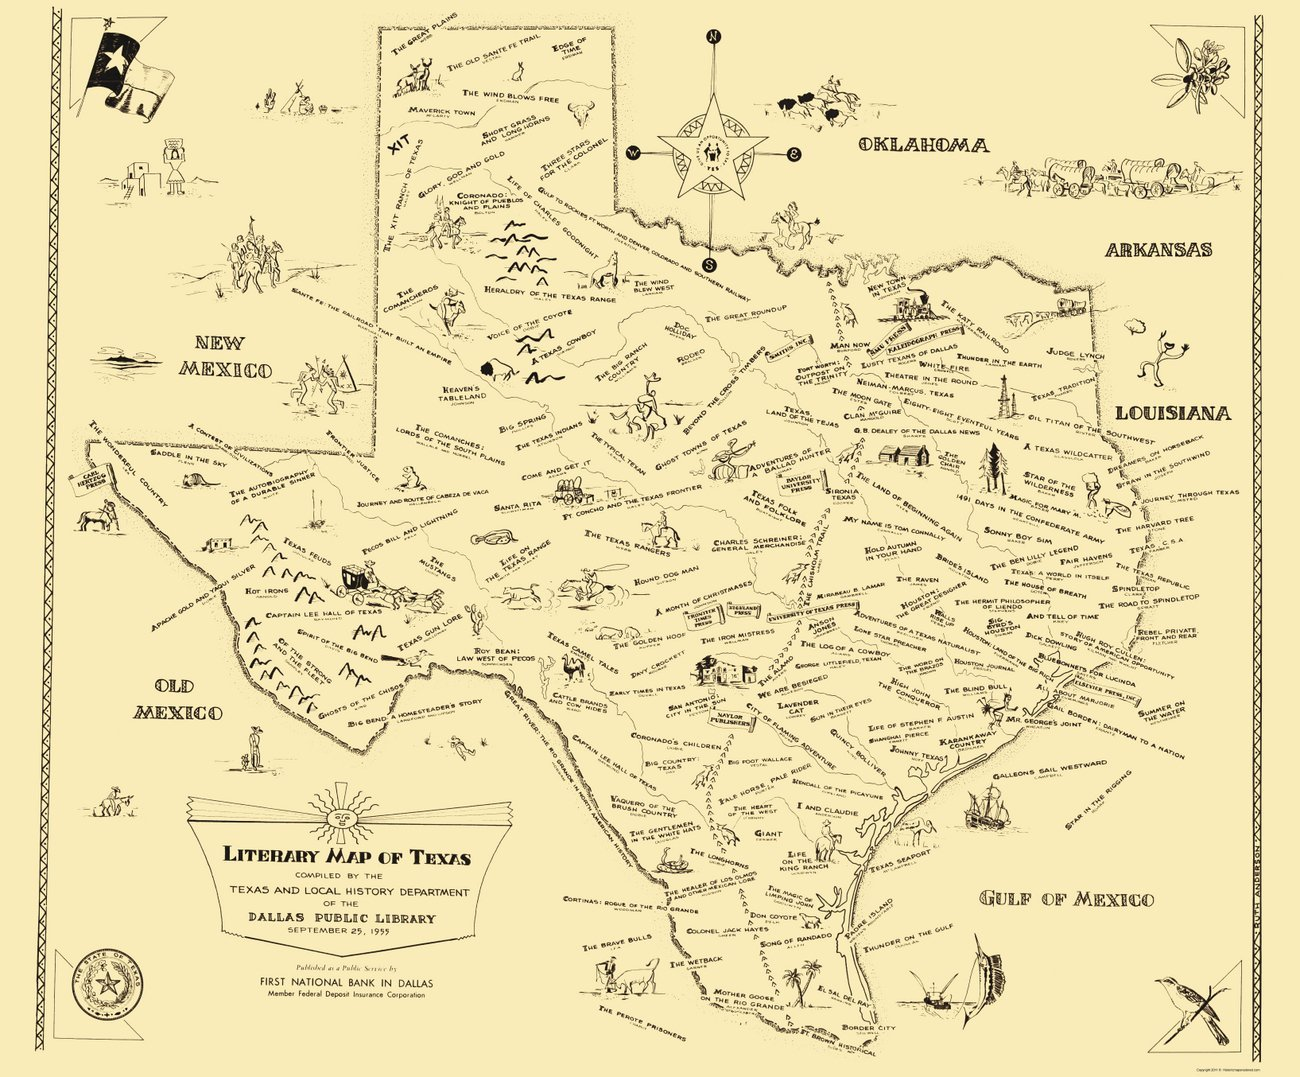 Literary Maps - 1955 literary map of Texas